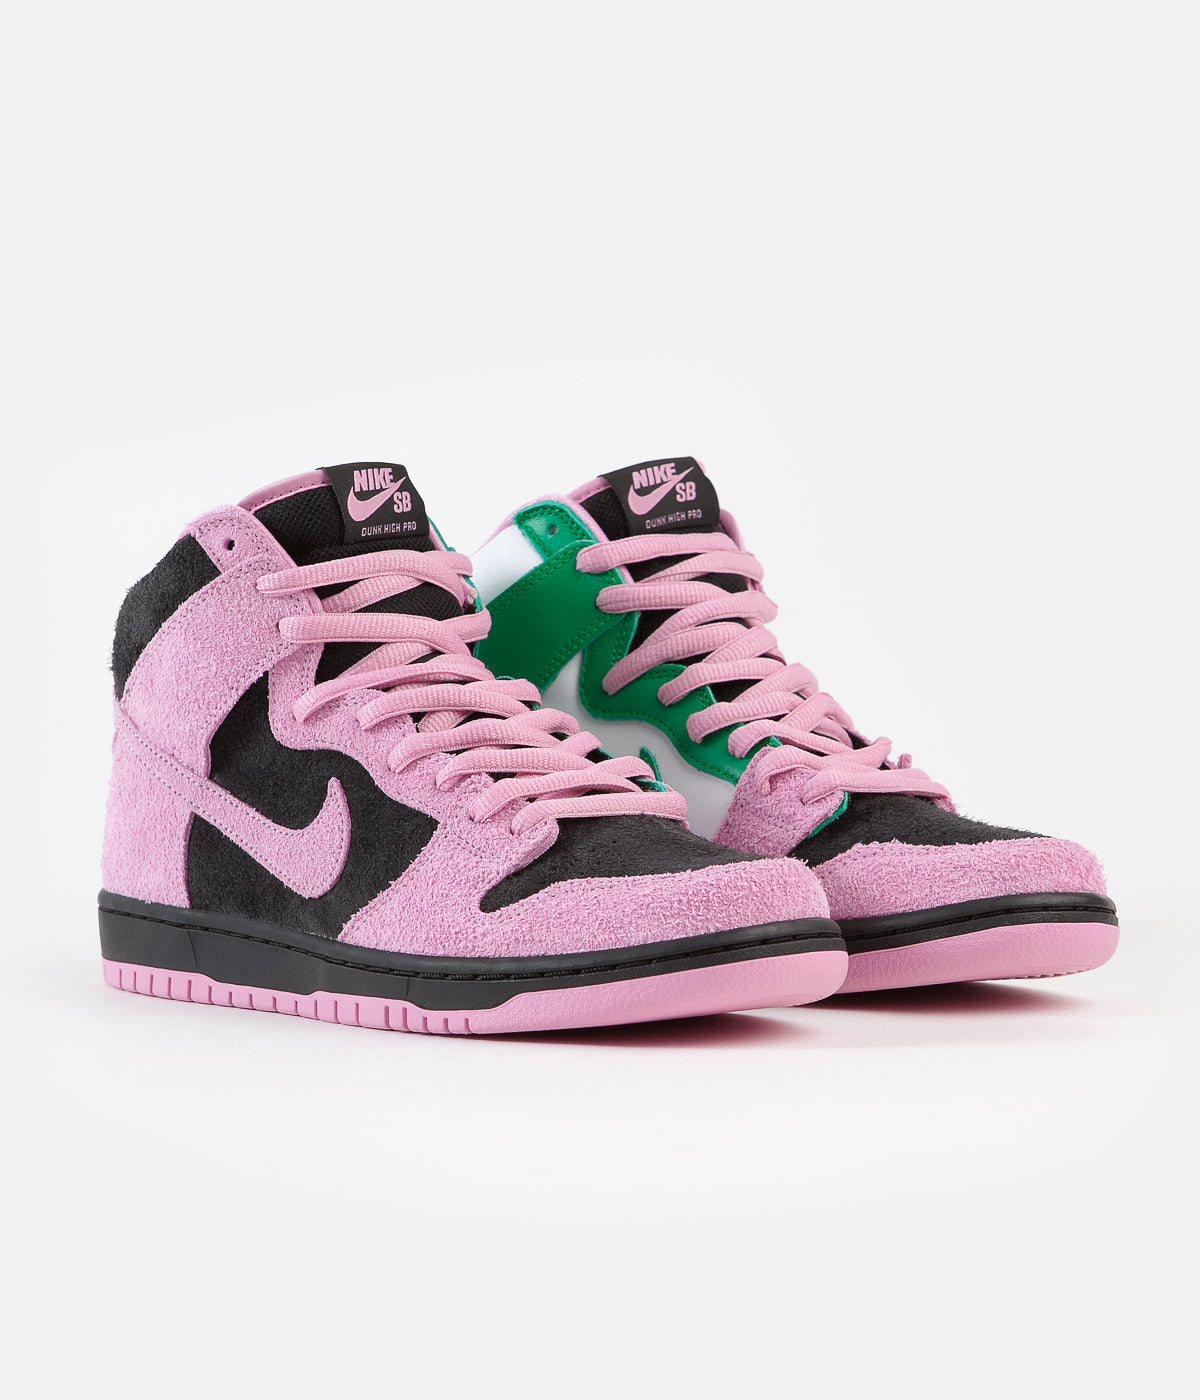 Nike SB Invert Dunk High Pro Premium Shoes - Black / Pink Rise - Lucky Green - White